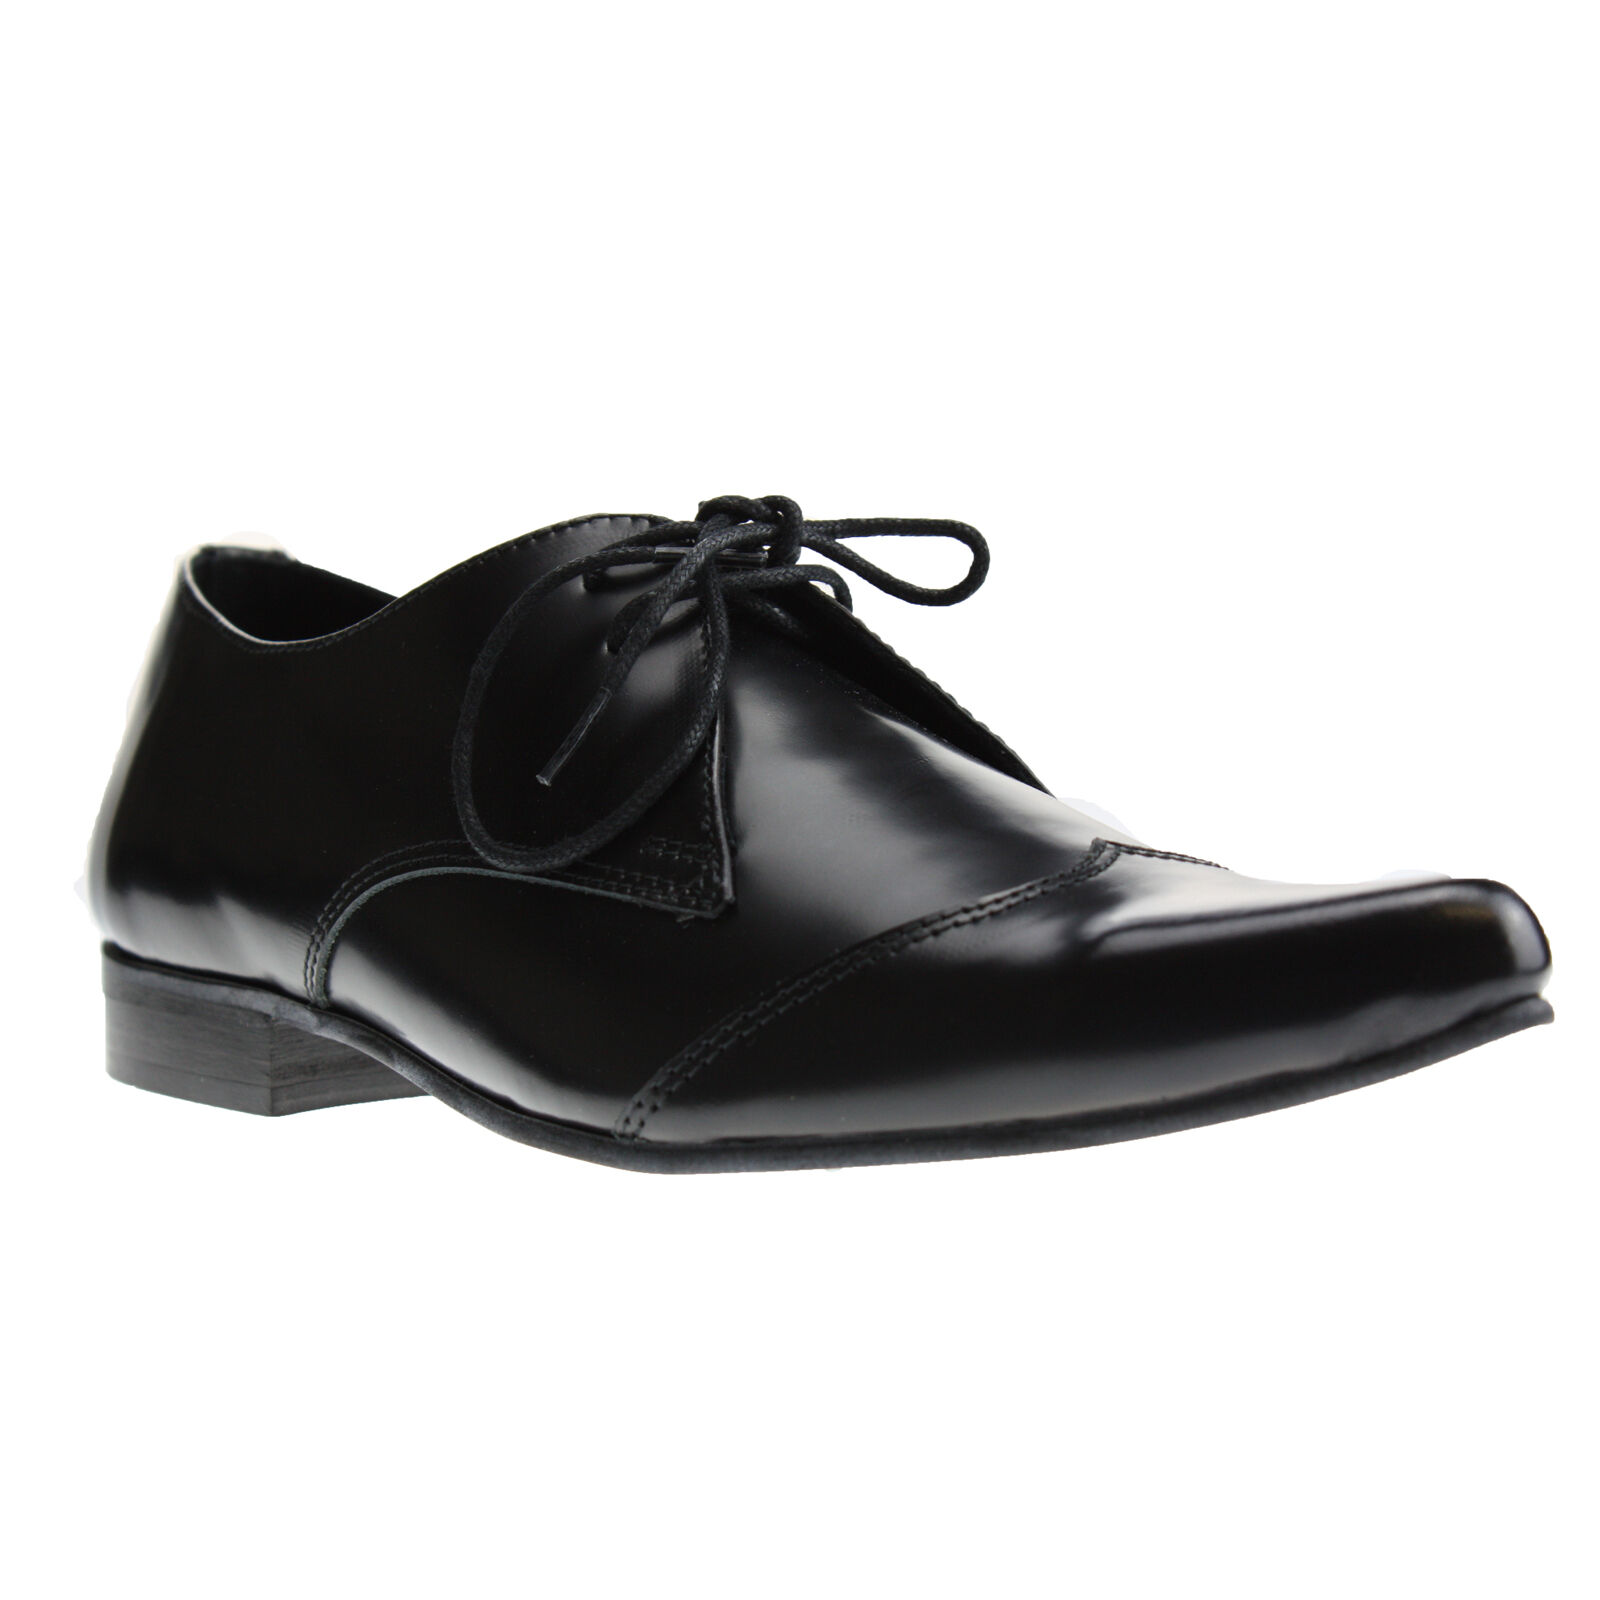 Boots and Pikes Braces Winkelpiker Classic Pelle Nera Scarpe Pikes and Scarpe Basse Nuovo daa2ee